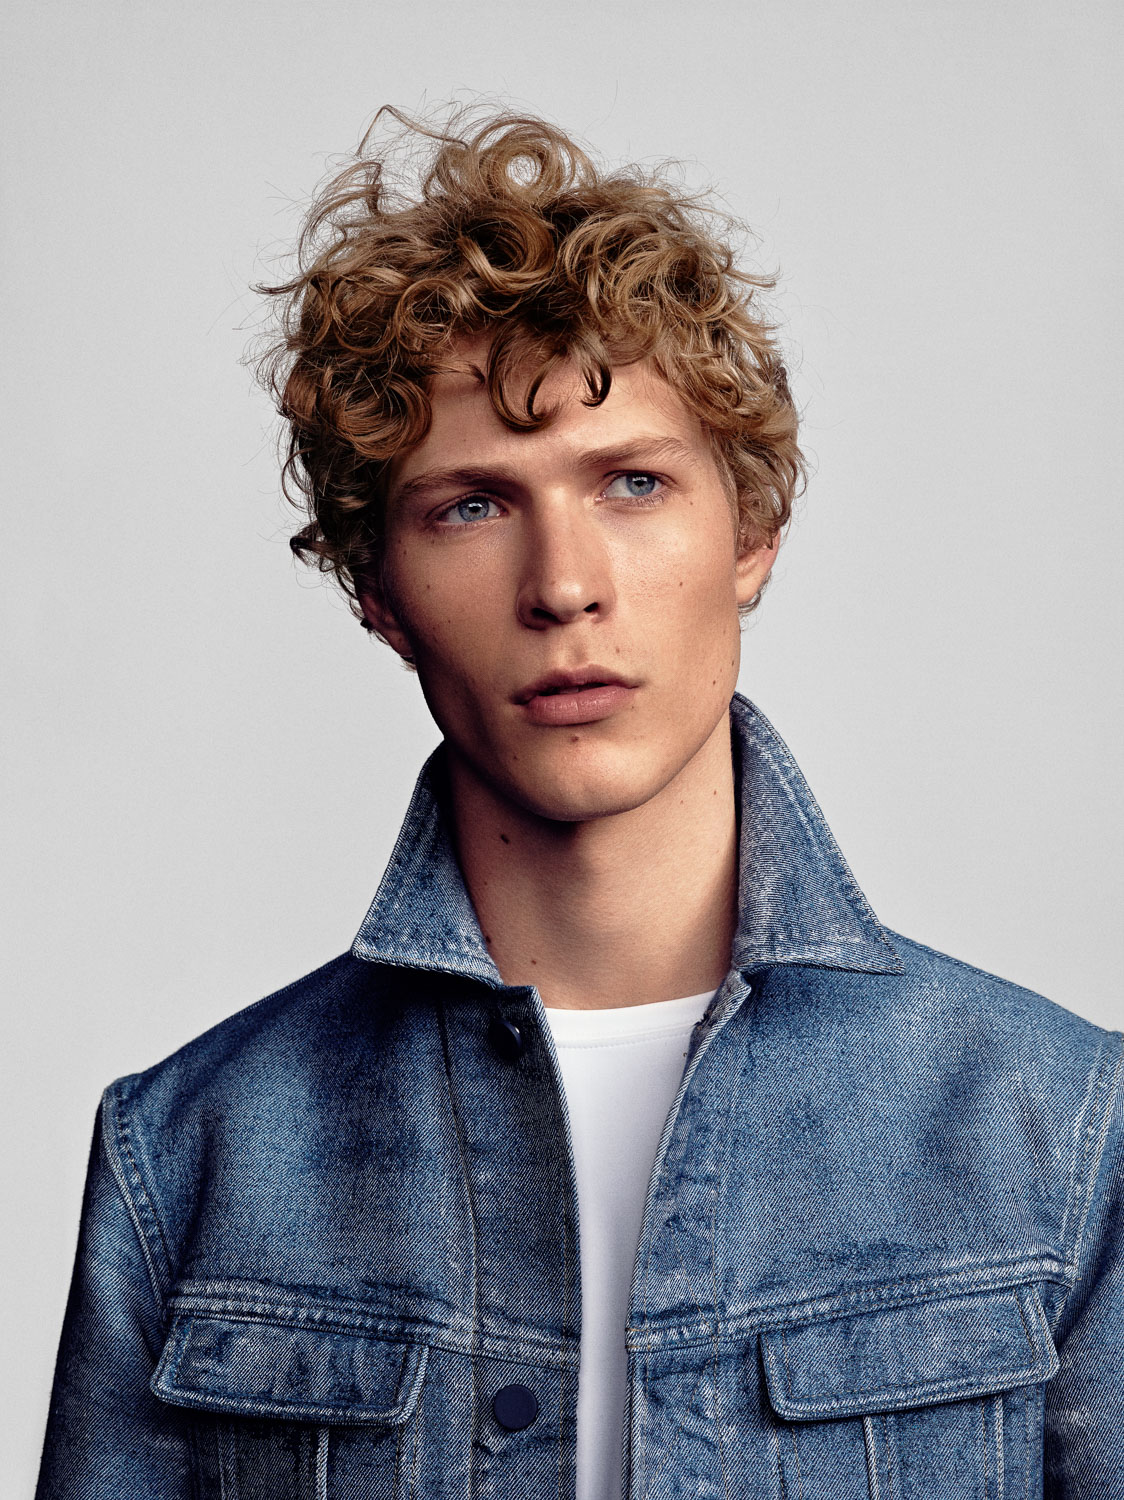 Sven de Vries for Vogue Man NL by Marc de Groot